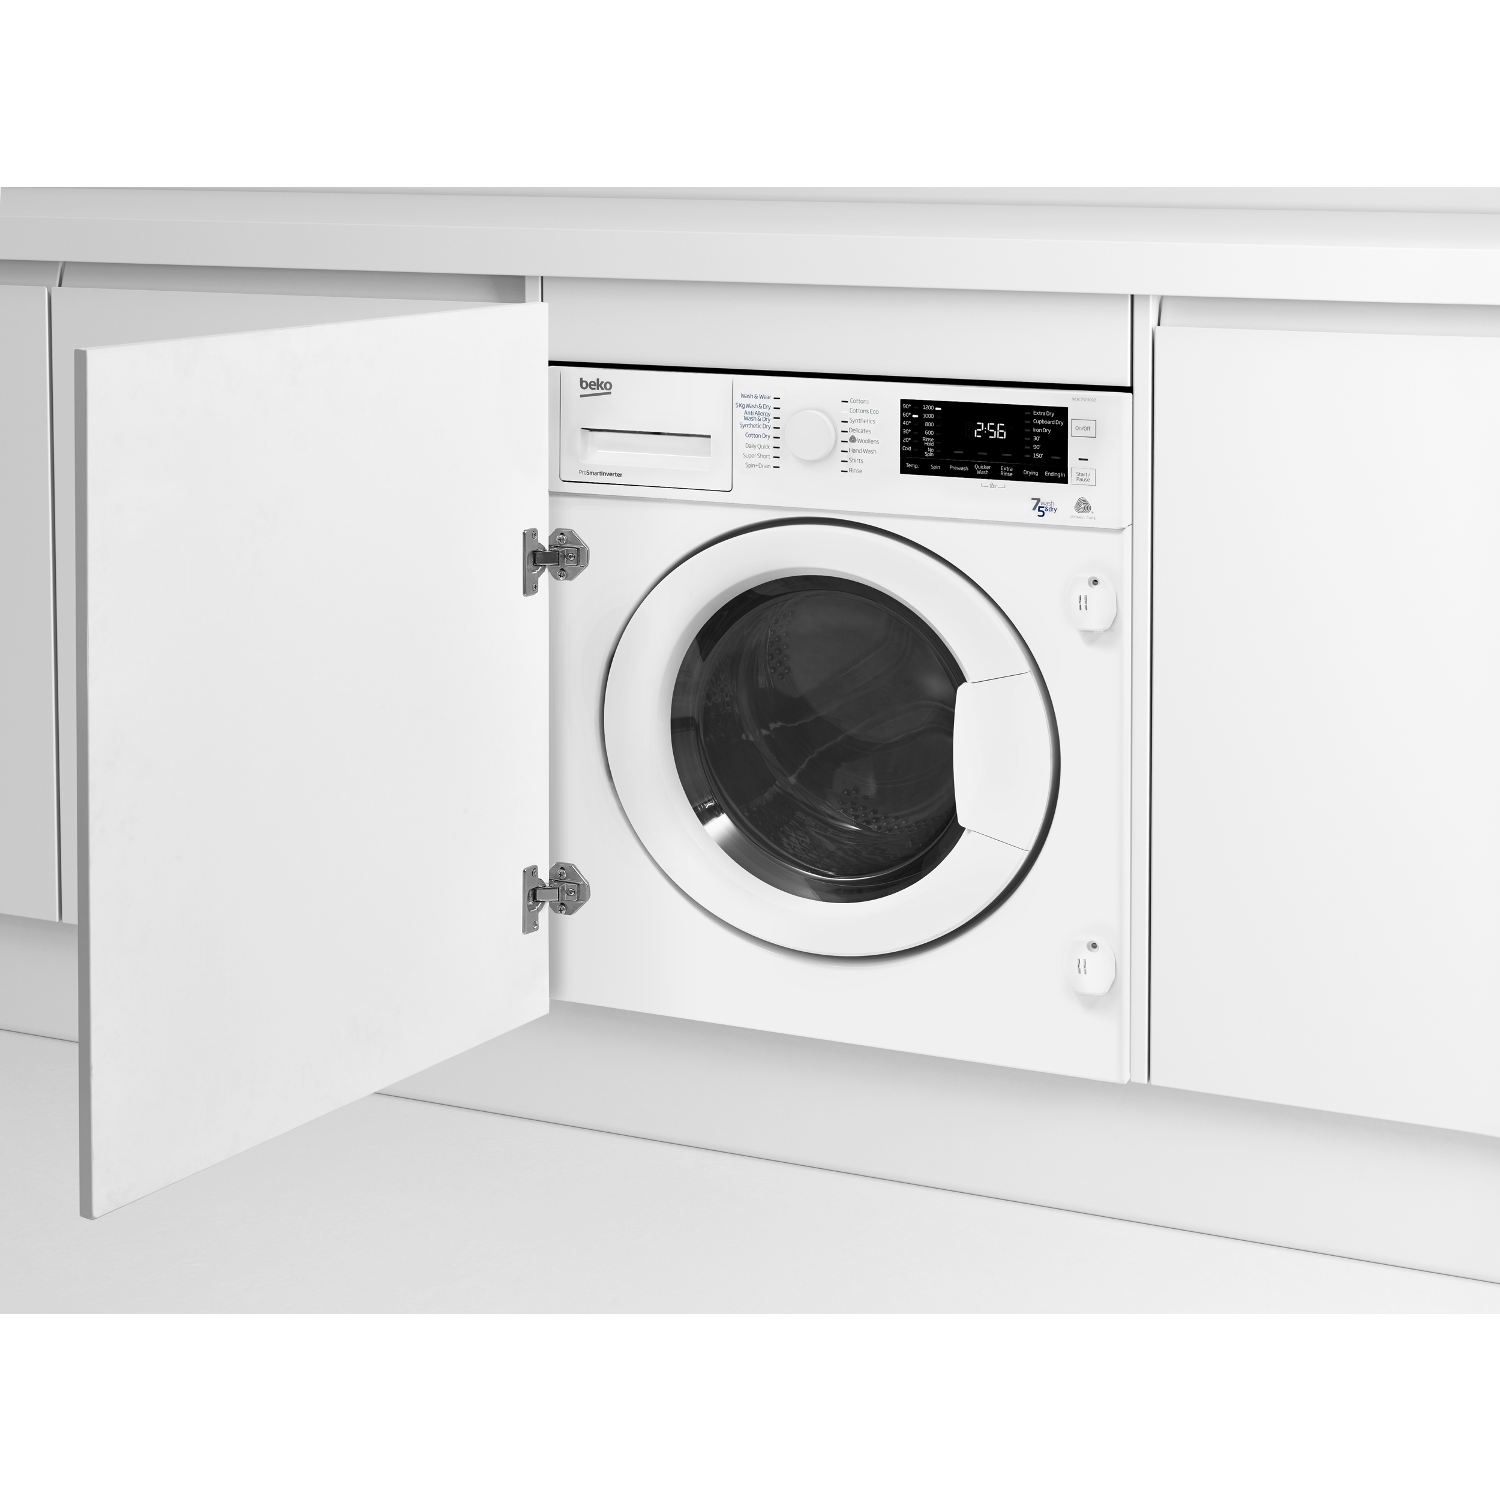 Beko Integrated 7kg/5kg 1200 Spin Washer Dryer - White - B Rated - 2